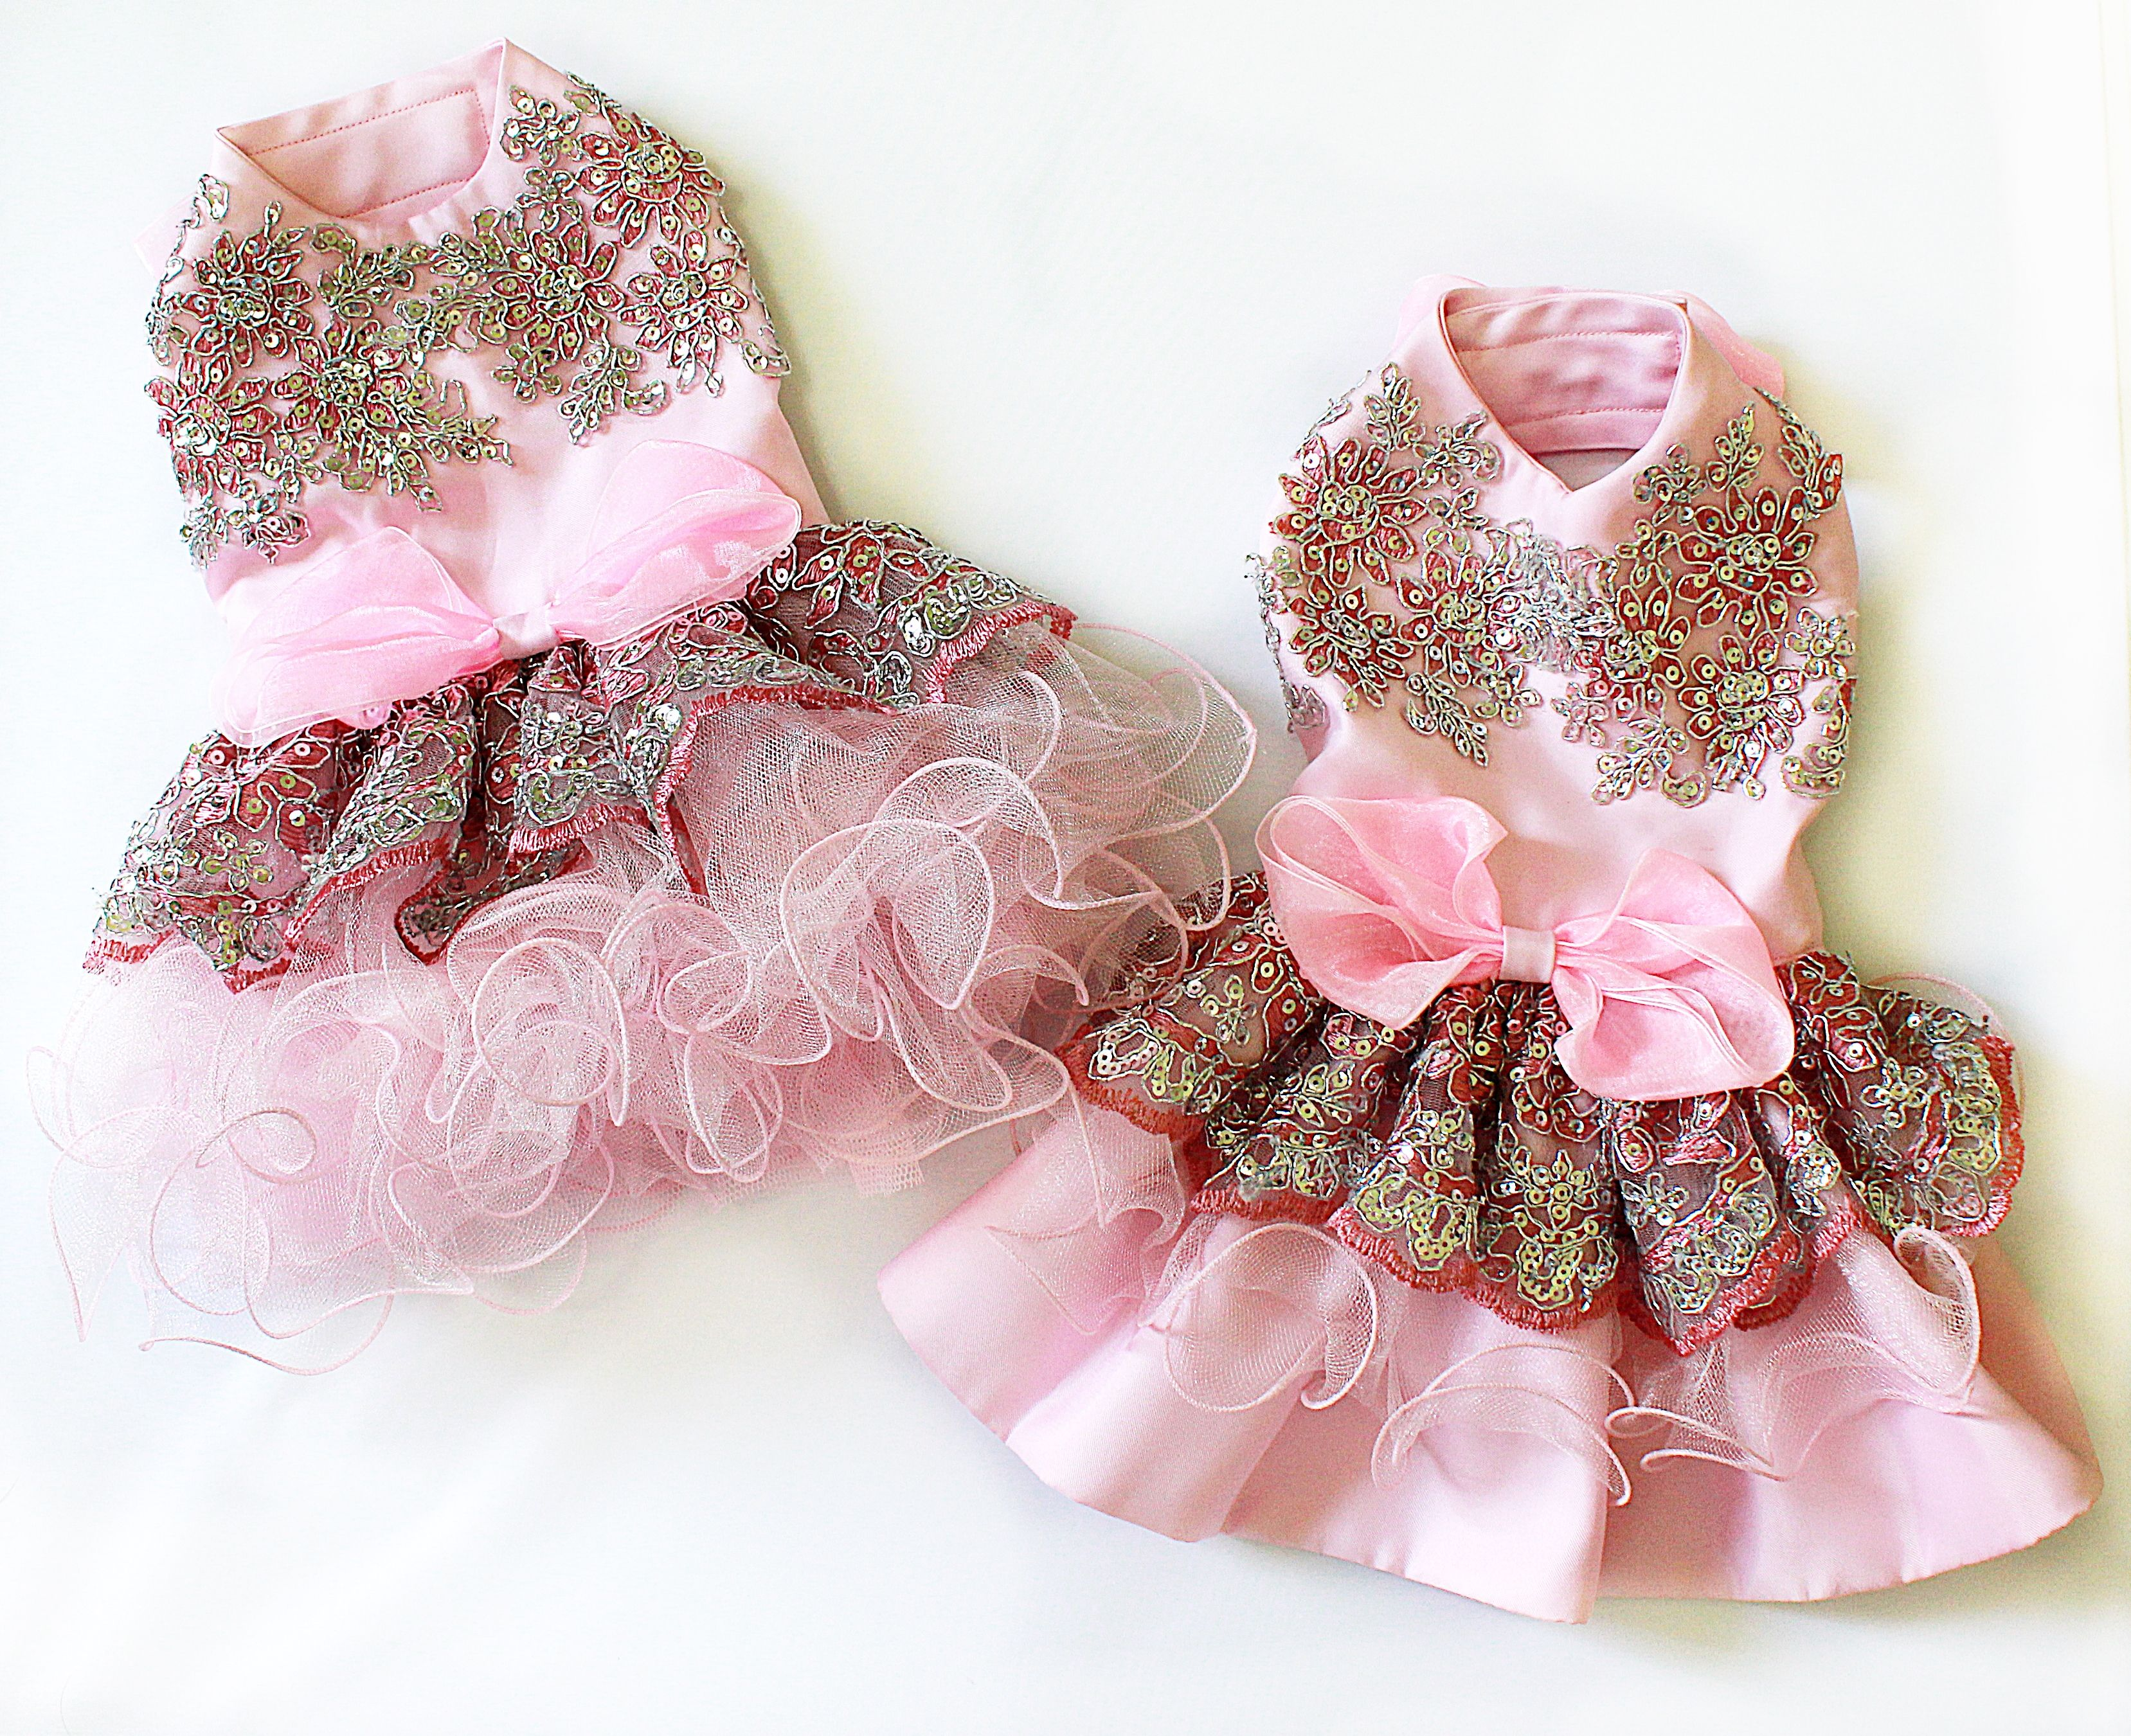 Bedazzled in Pink | PERRIS | Pinterest | Ropa para mascotas ...